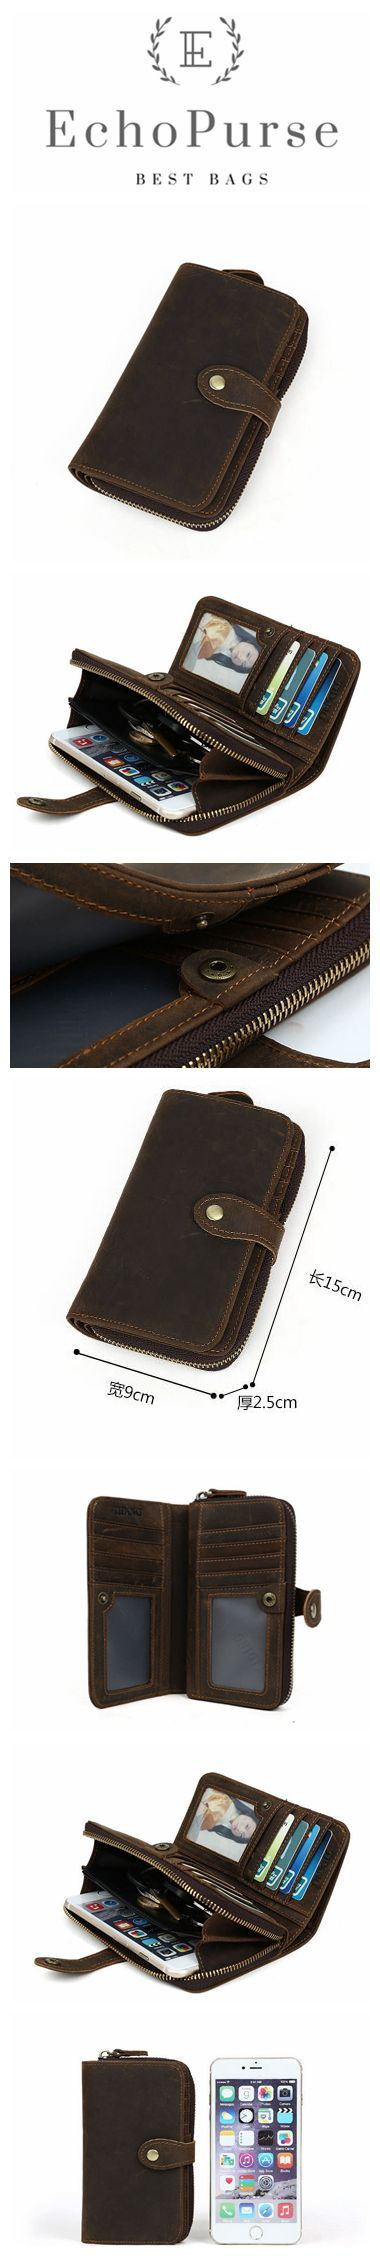 Vintage Style Leather Handbag, Multi-Function Button Cell Phone Wallet CN4027